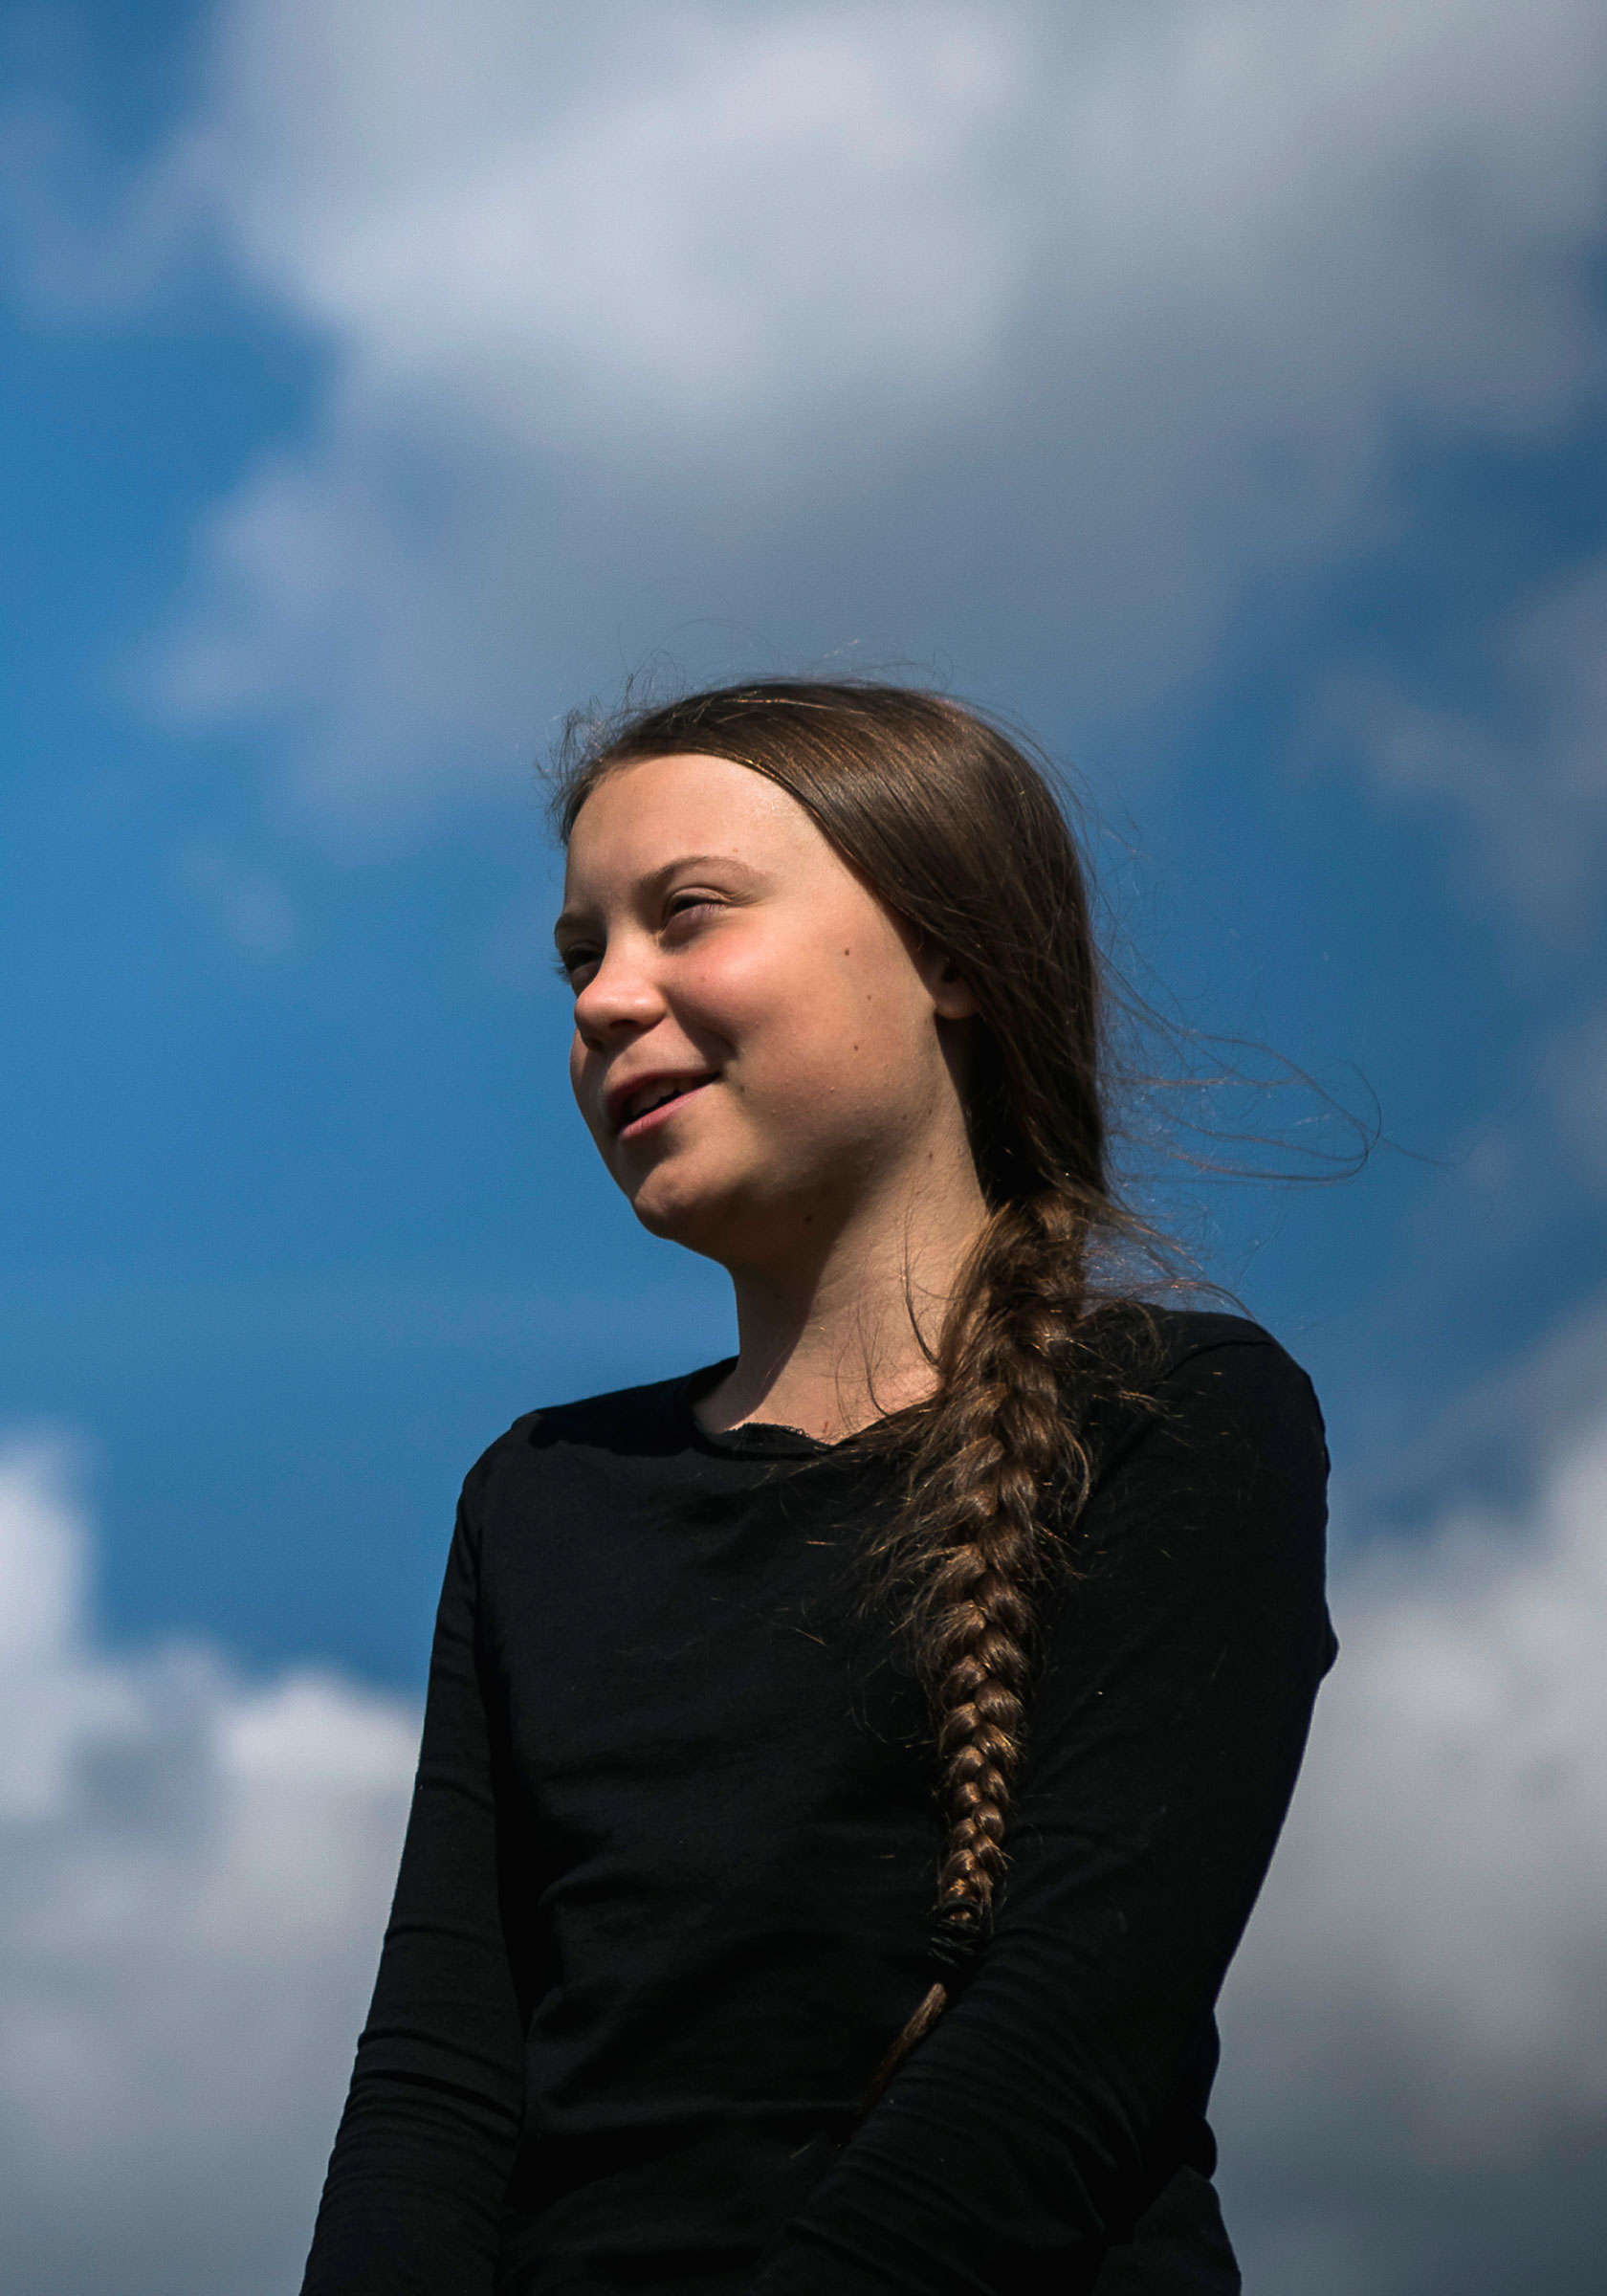 Greta Thunberg, the 16-year-old Swedish climate activist, is interviewed ahead of the  Global Strike For Future  movement on a global day of student protests aiming to spark world leaders into action on climate change in Stockholm, Sweden on May 24, 2019.